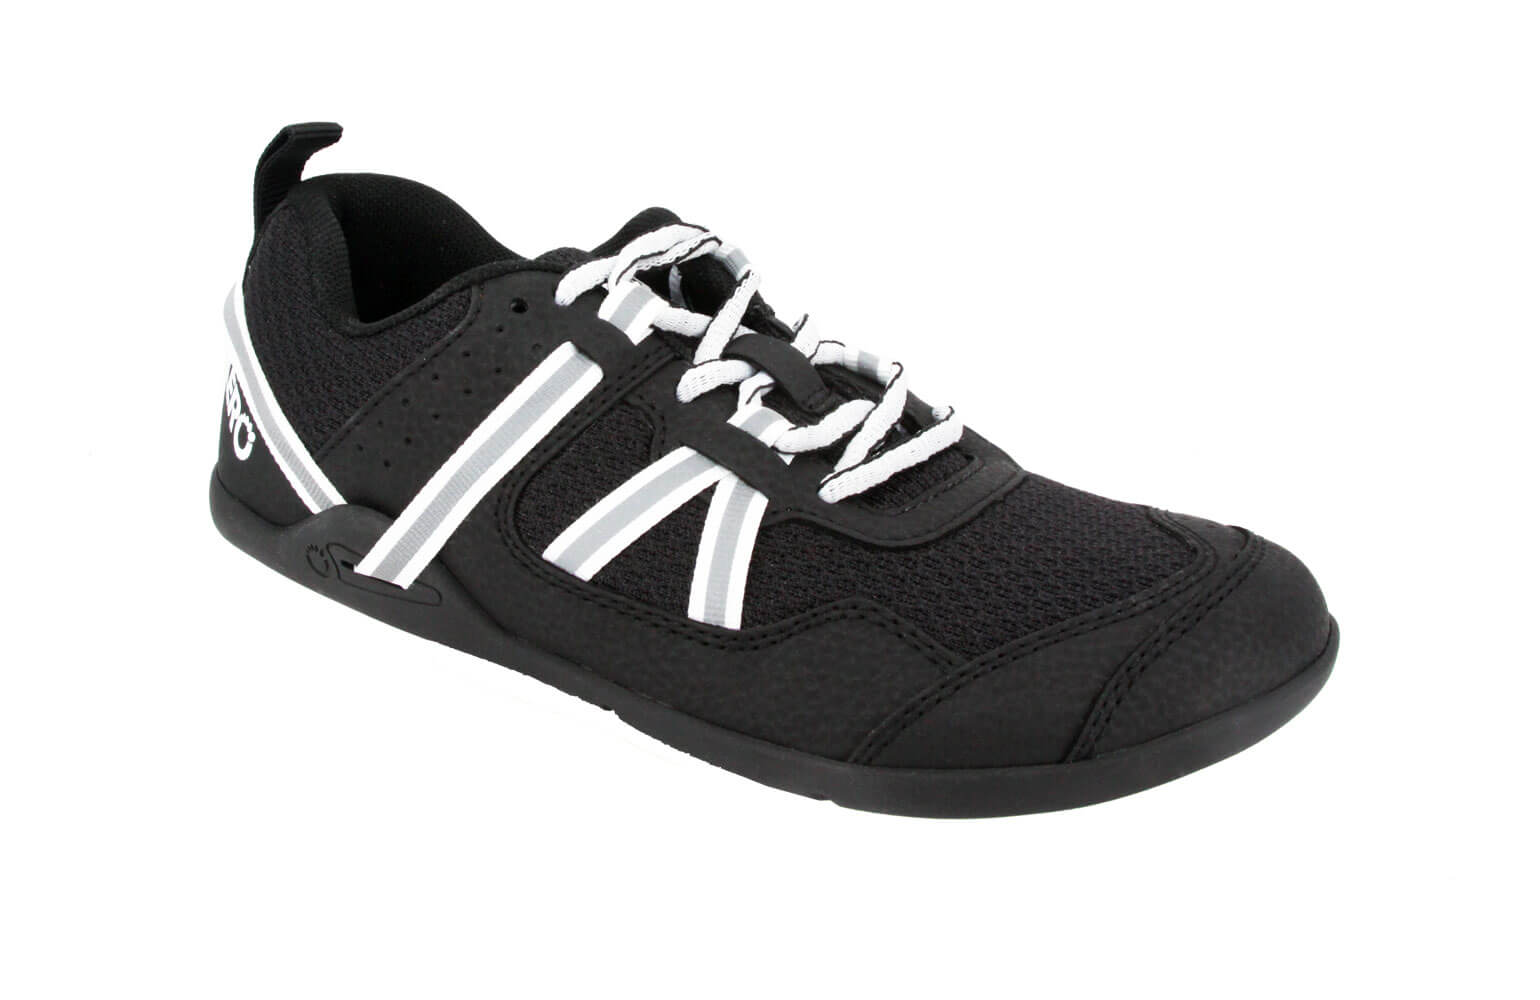 Kids Minimalist Barefoot Athletic Shoe Prio By Xero Shoes